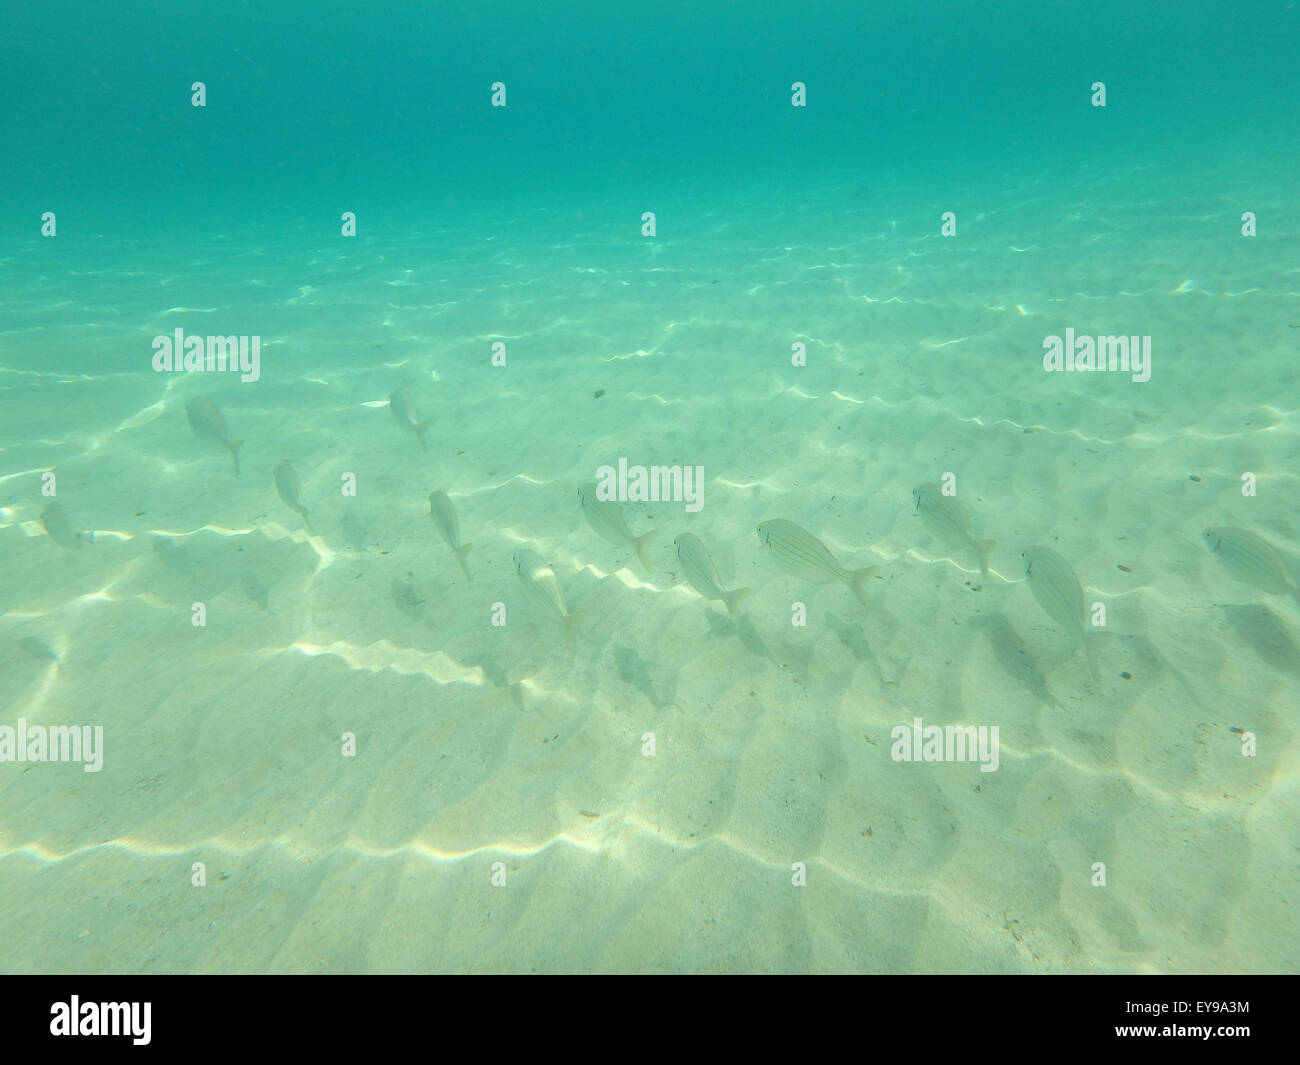 Underwater photo capturing the world bellow the sea level. - Stock Image